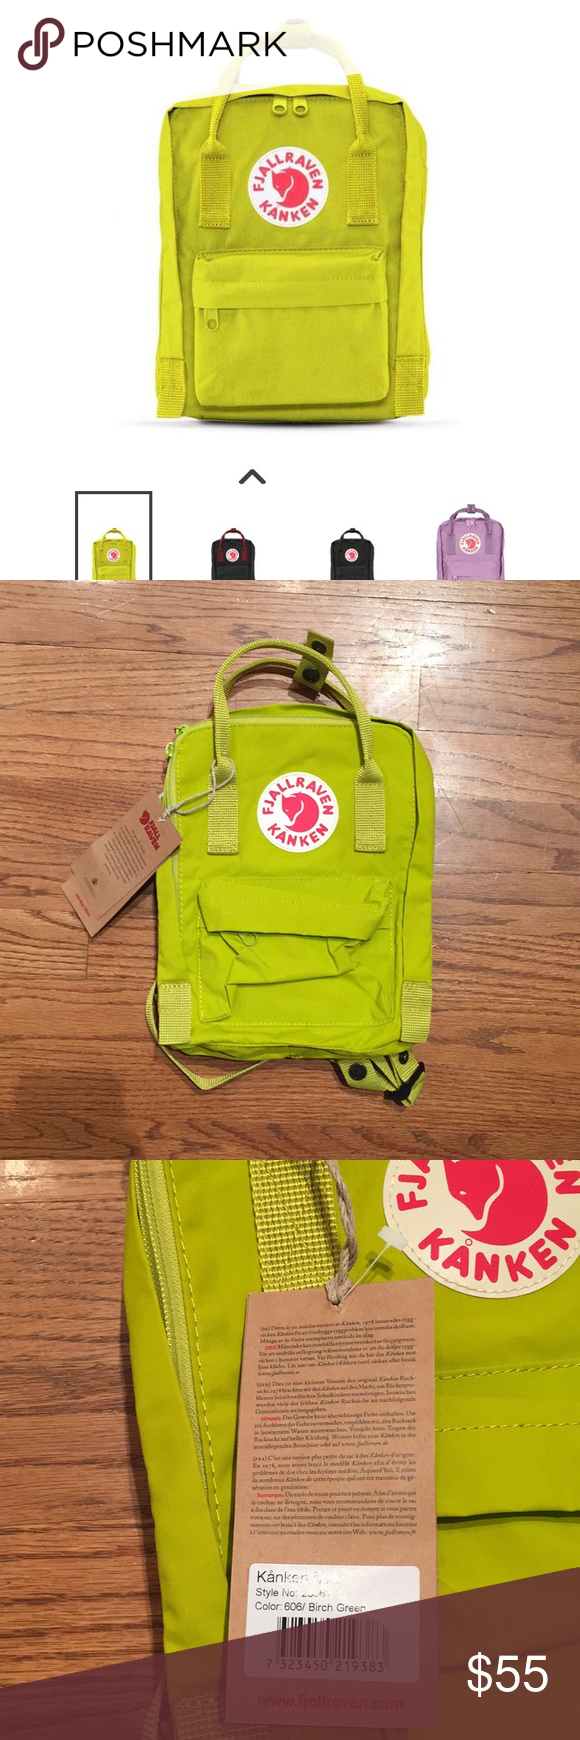 Fjallraven Kanken Mini Backpack Nwt In 2018 My Posh Picks Classic Birch Green Color Sku F23561 Outer